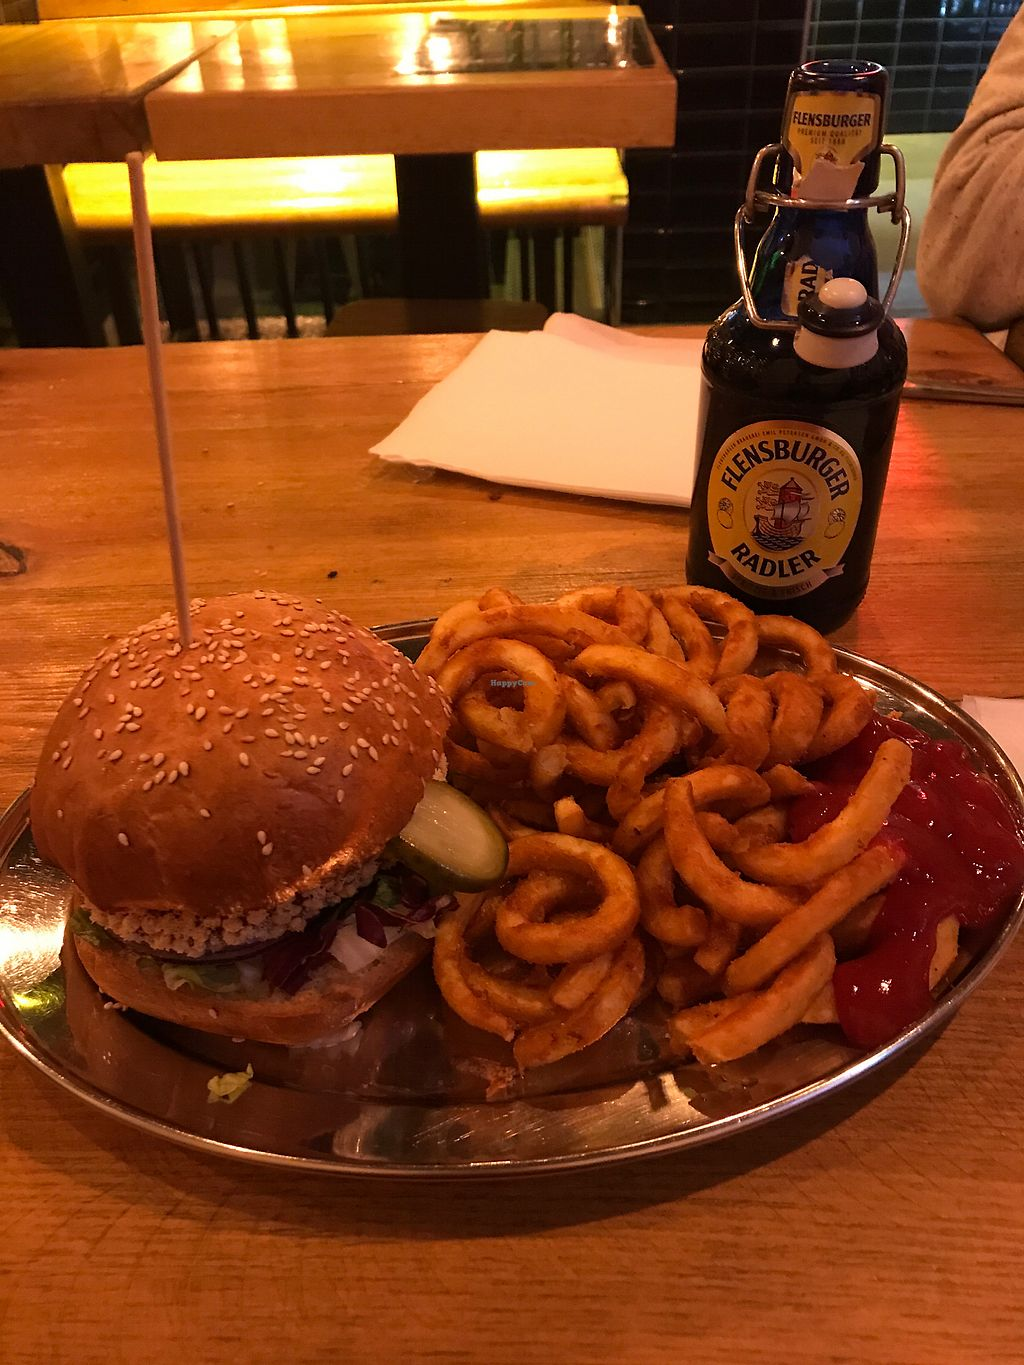 "Photo of KreuzBurger - Rosenthaler  by <a href=""/members/profile/megcanical"">megcanical</a> <br/>Beet burger and curly fries! <br/> March 14, 2018  - <a href='/contact/abuse/image/86886/370690'>Report</a>"